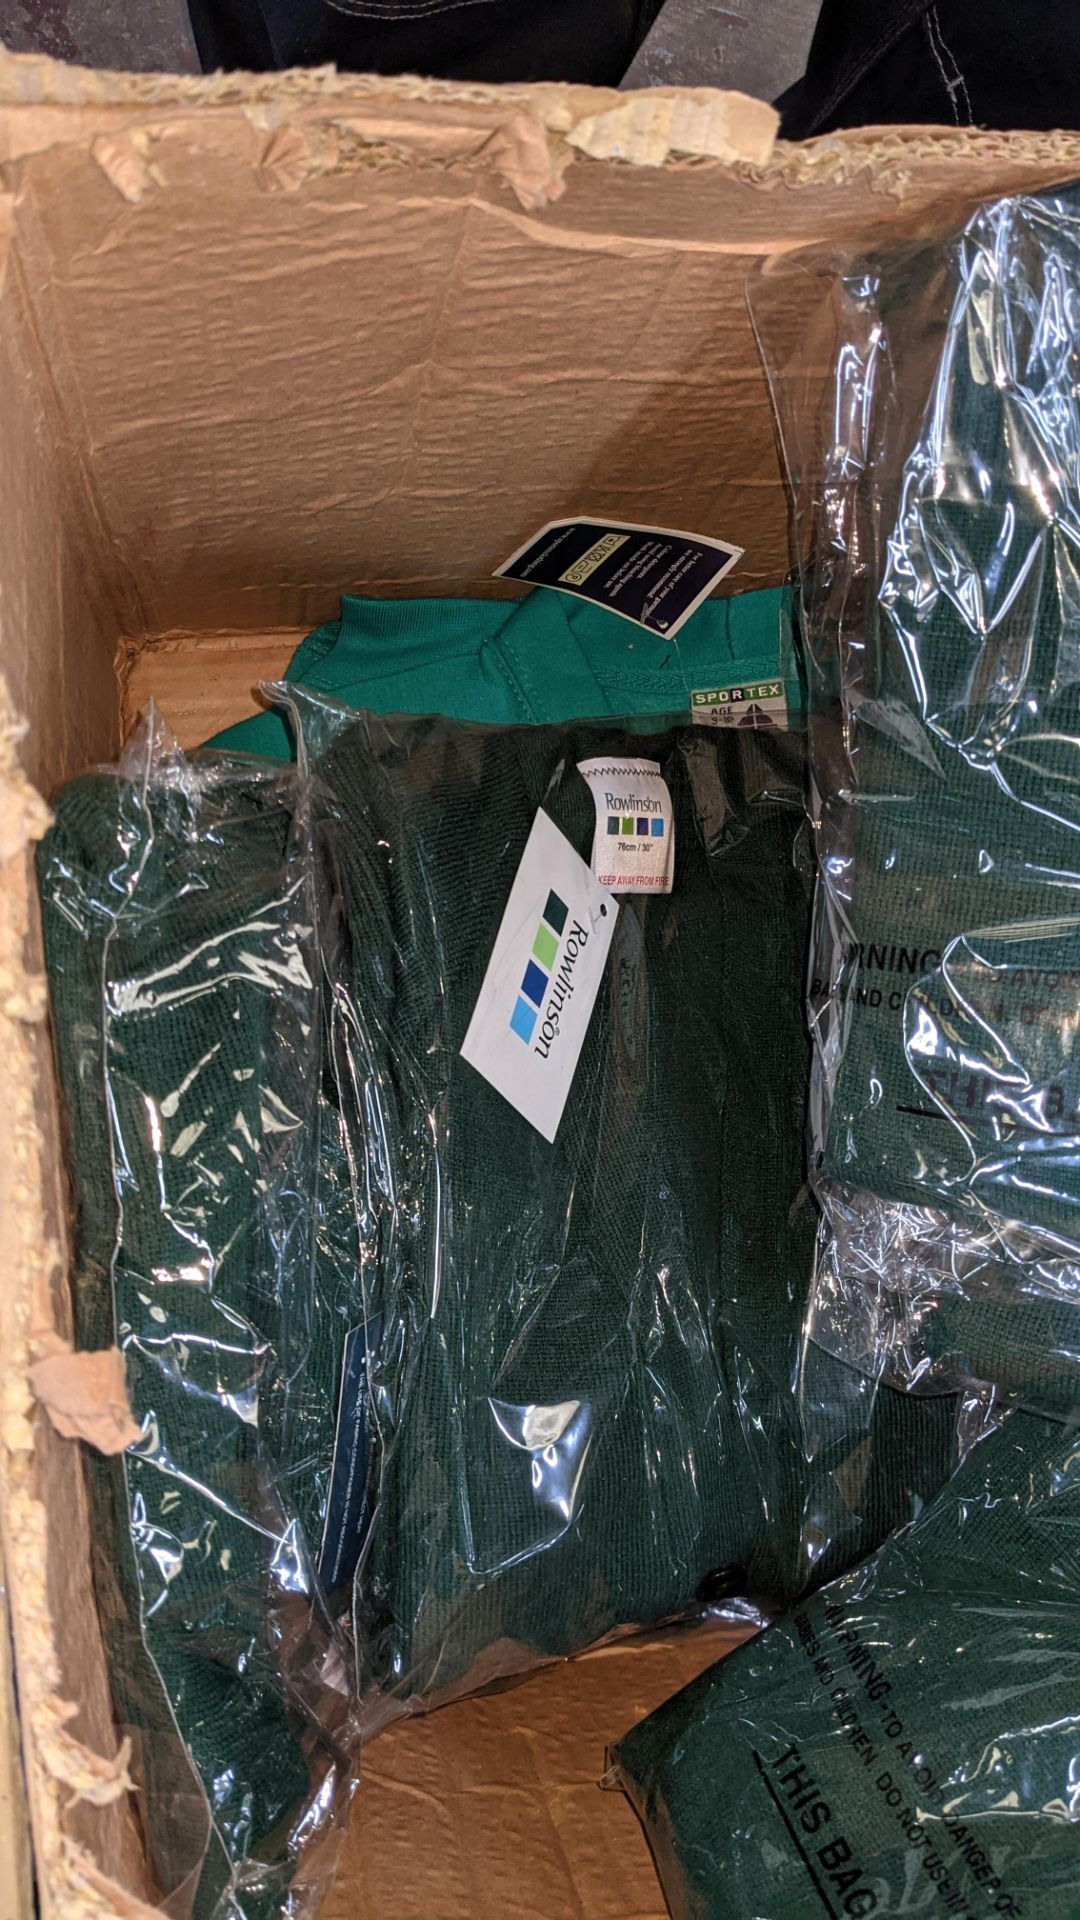 Approx 18 off Rowlinson children's green button up sweat tops - 1 large box - Image 6 of 6